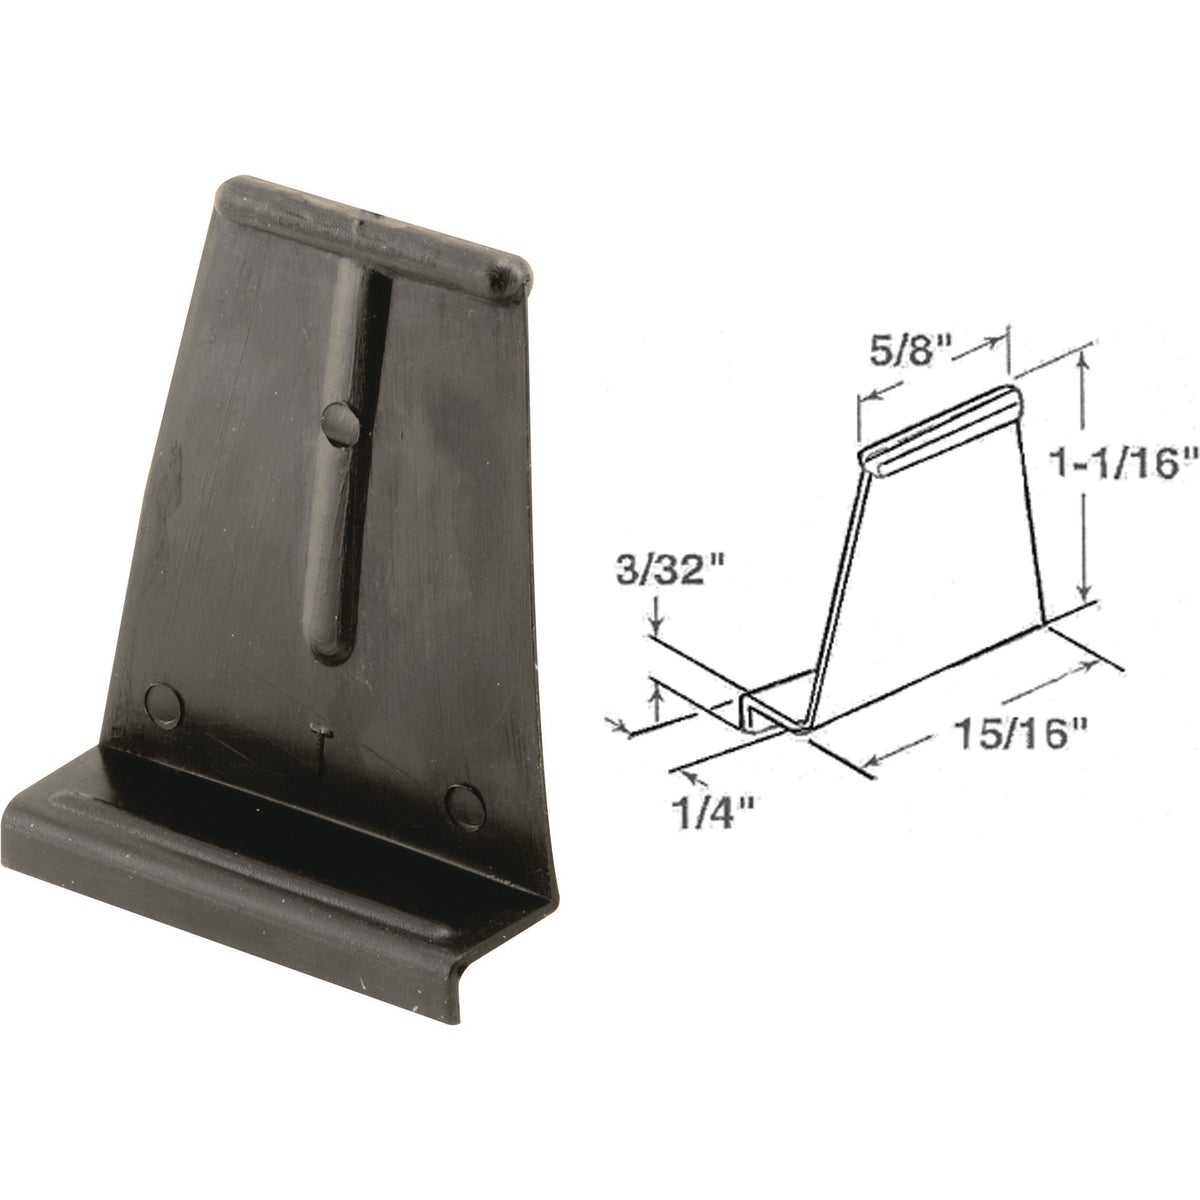 6PK CHANNEL PULL TAB - PL7921 by Prime Line Products